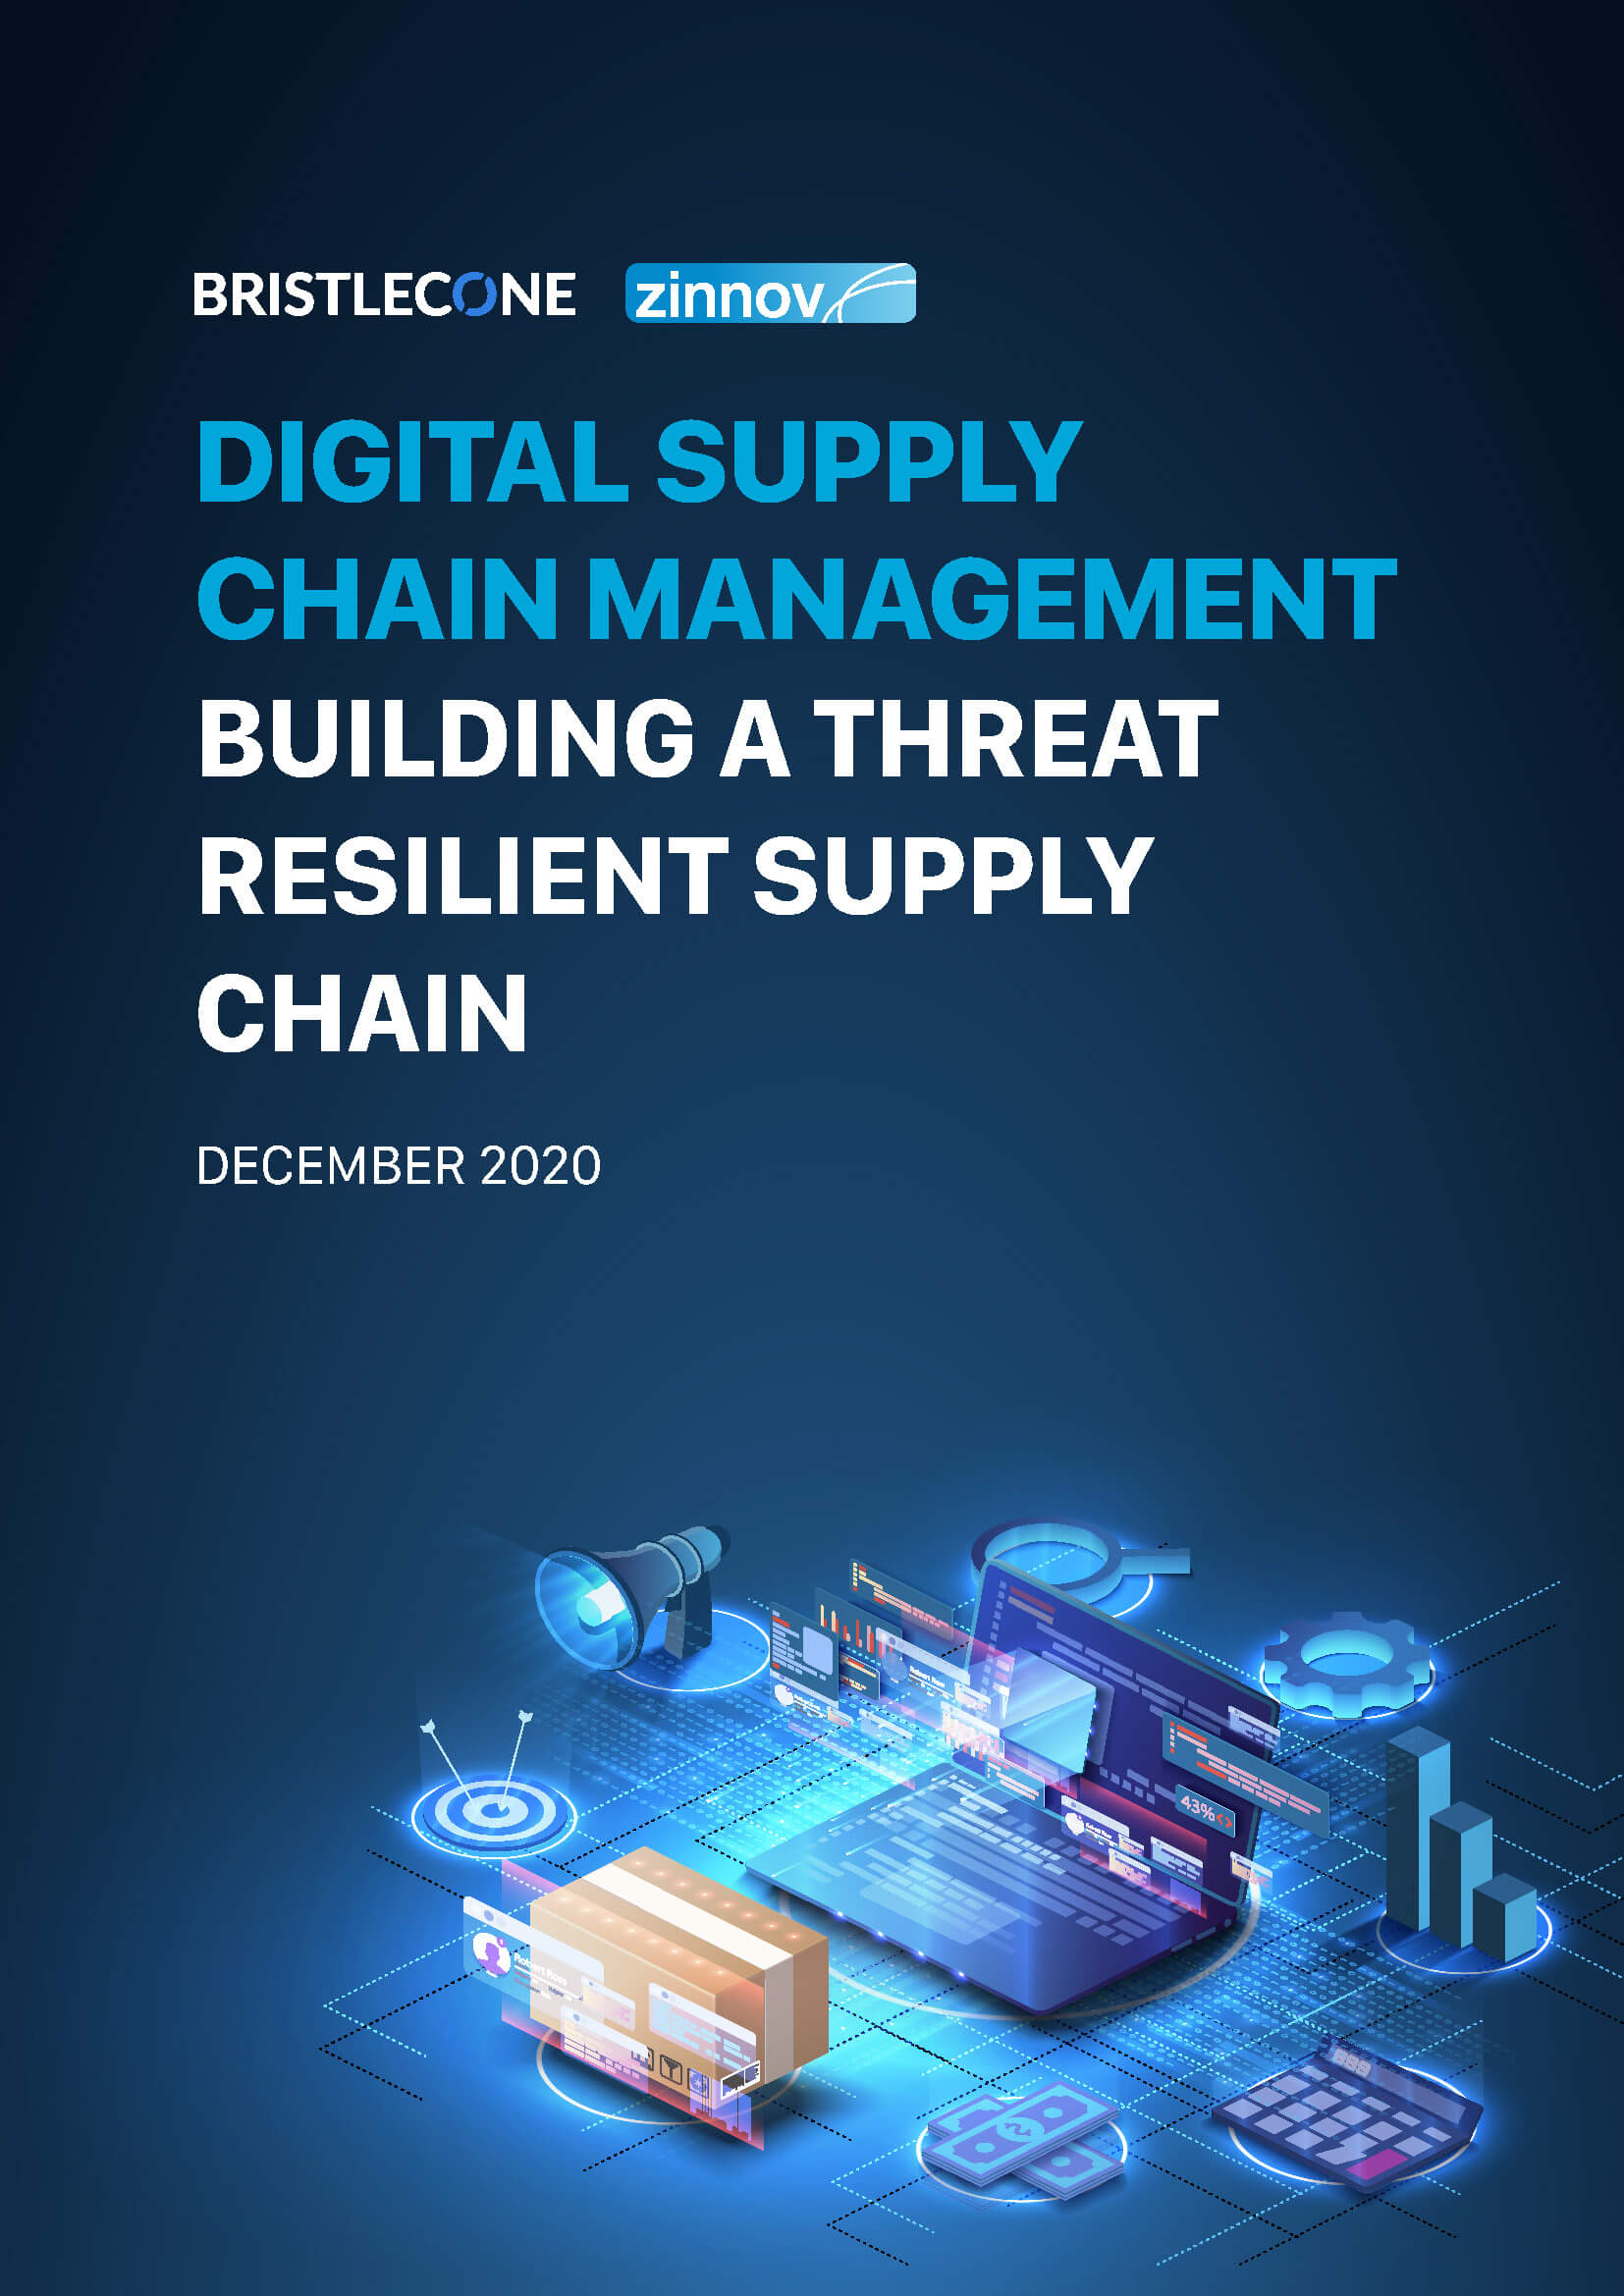 Digital Supply Chain Management – Building A Threat Resilient Supply Chain